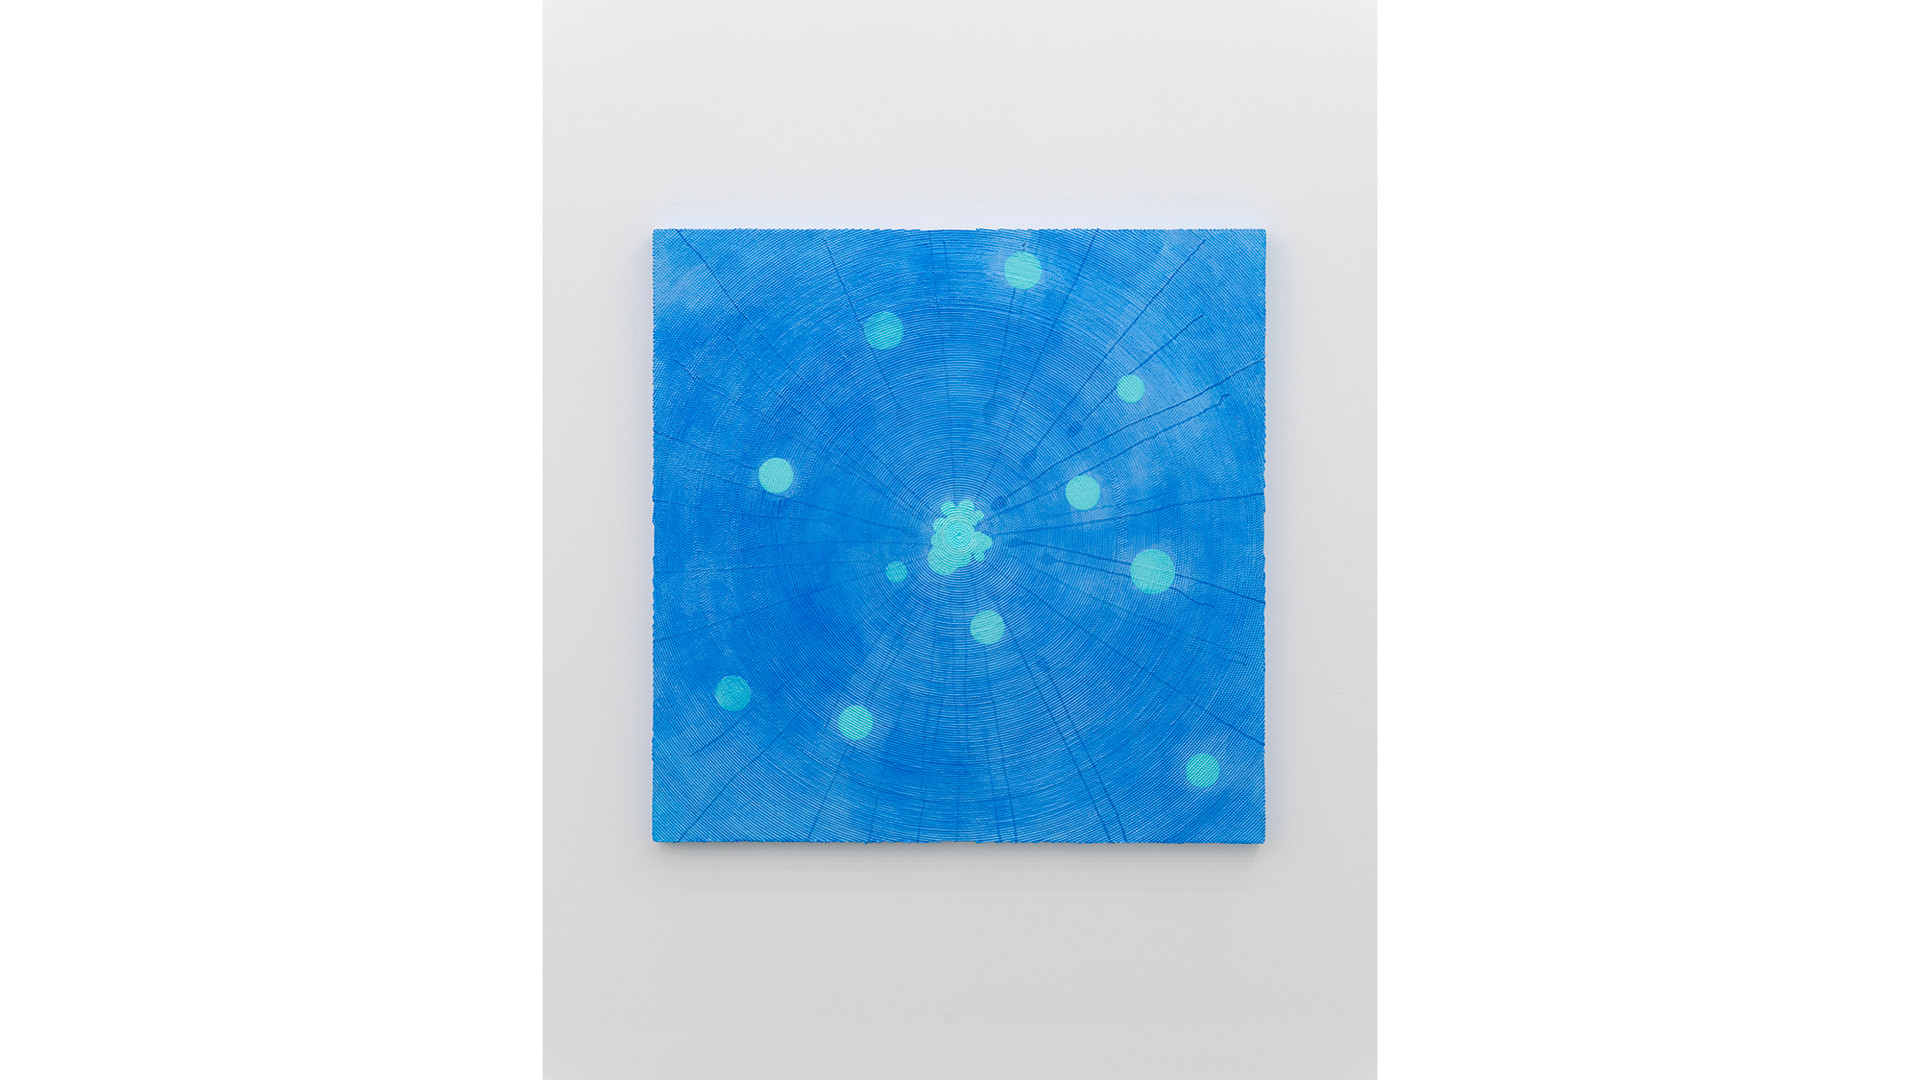 The Sagittarius with Particles, 2020, acrylic & phosphorescent pigment on the work of sequins on canvas, 107x107 cm